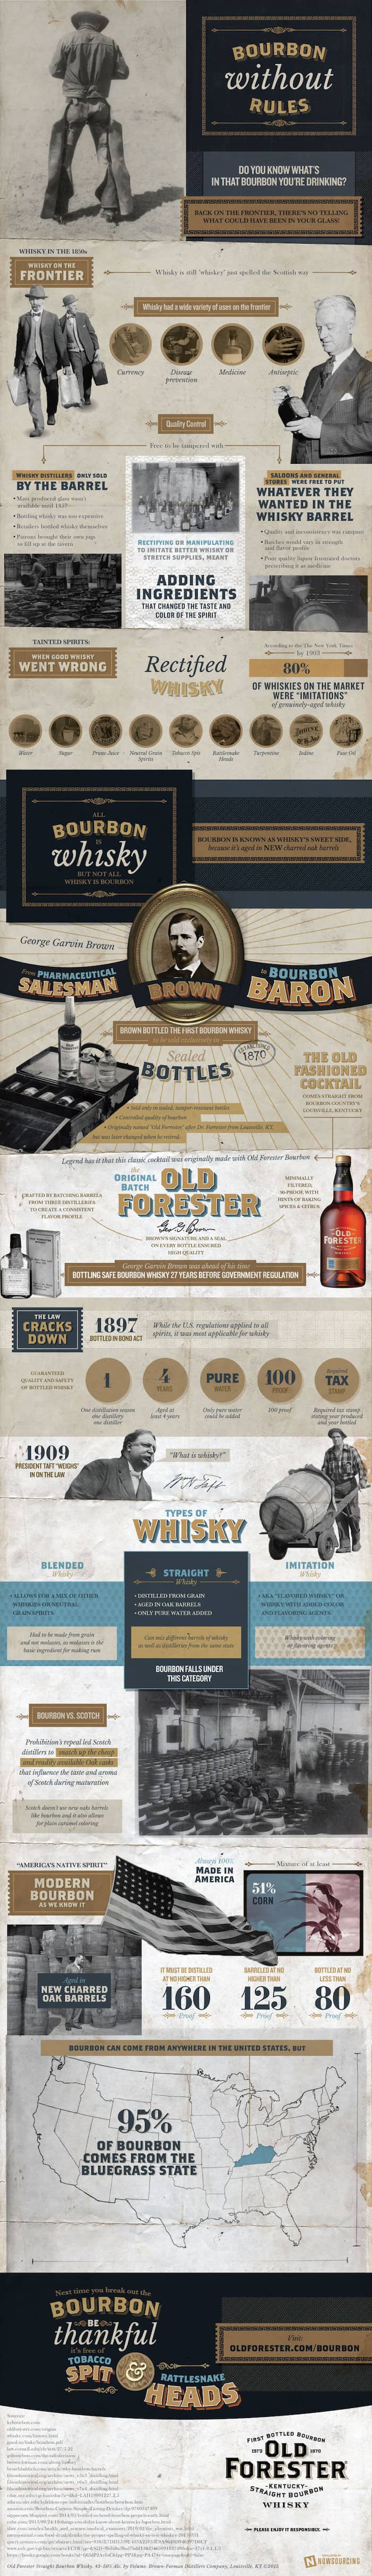 Old Forester Infographic